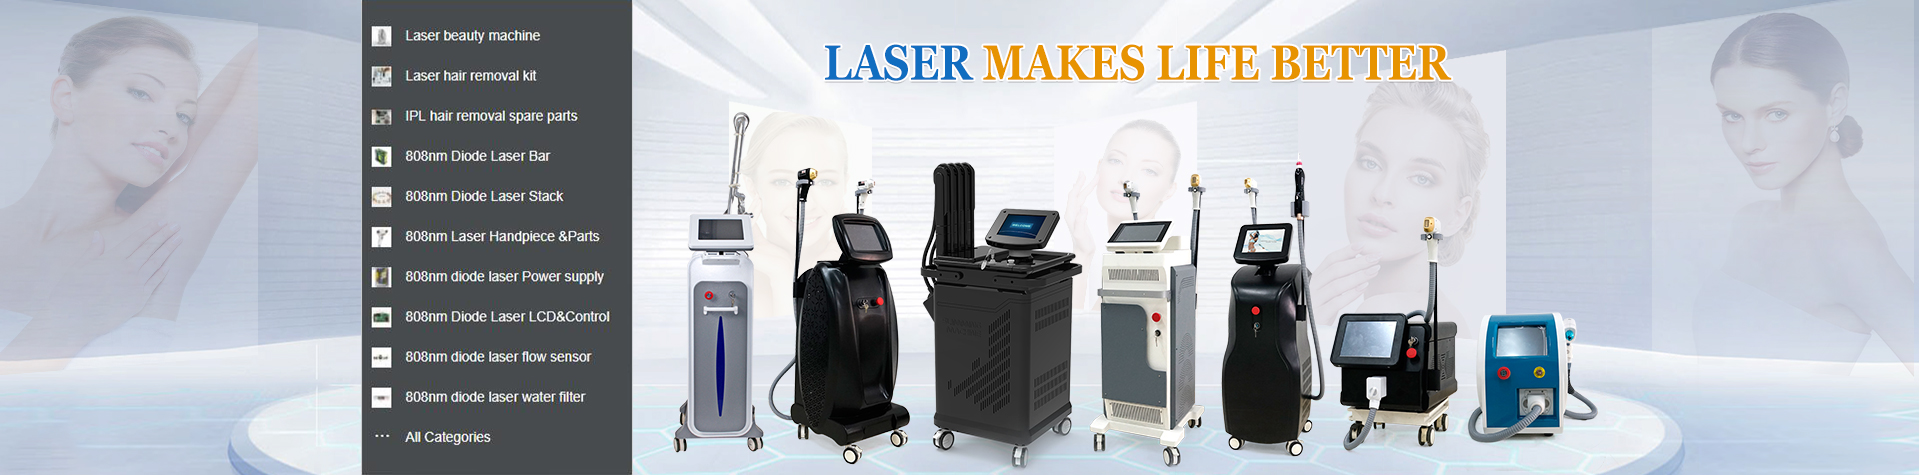 Laser beauty machine